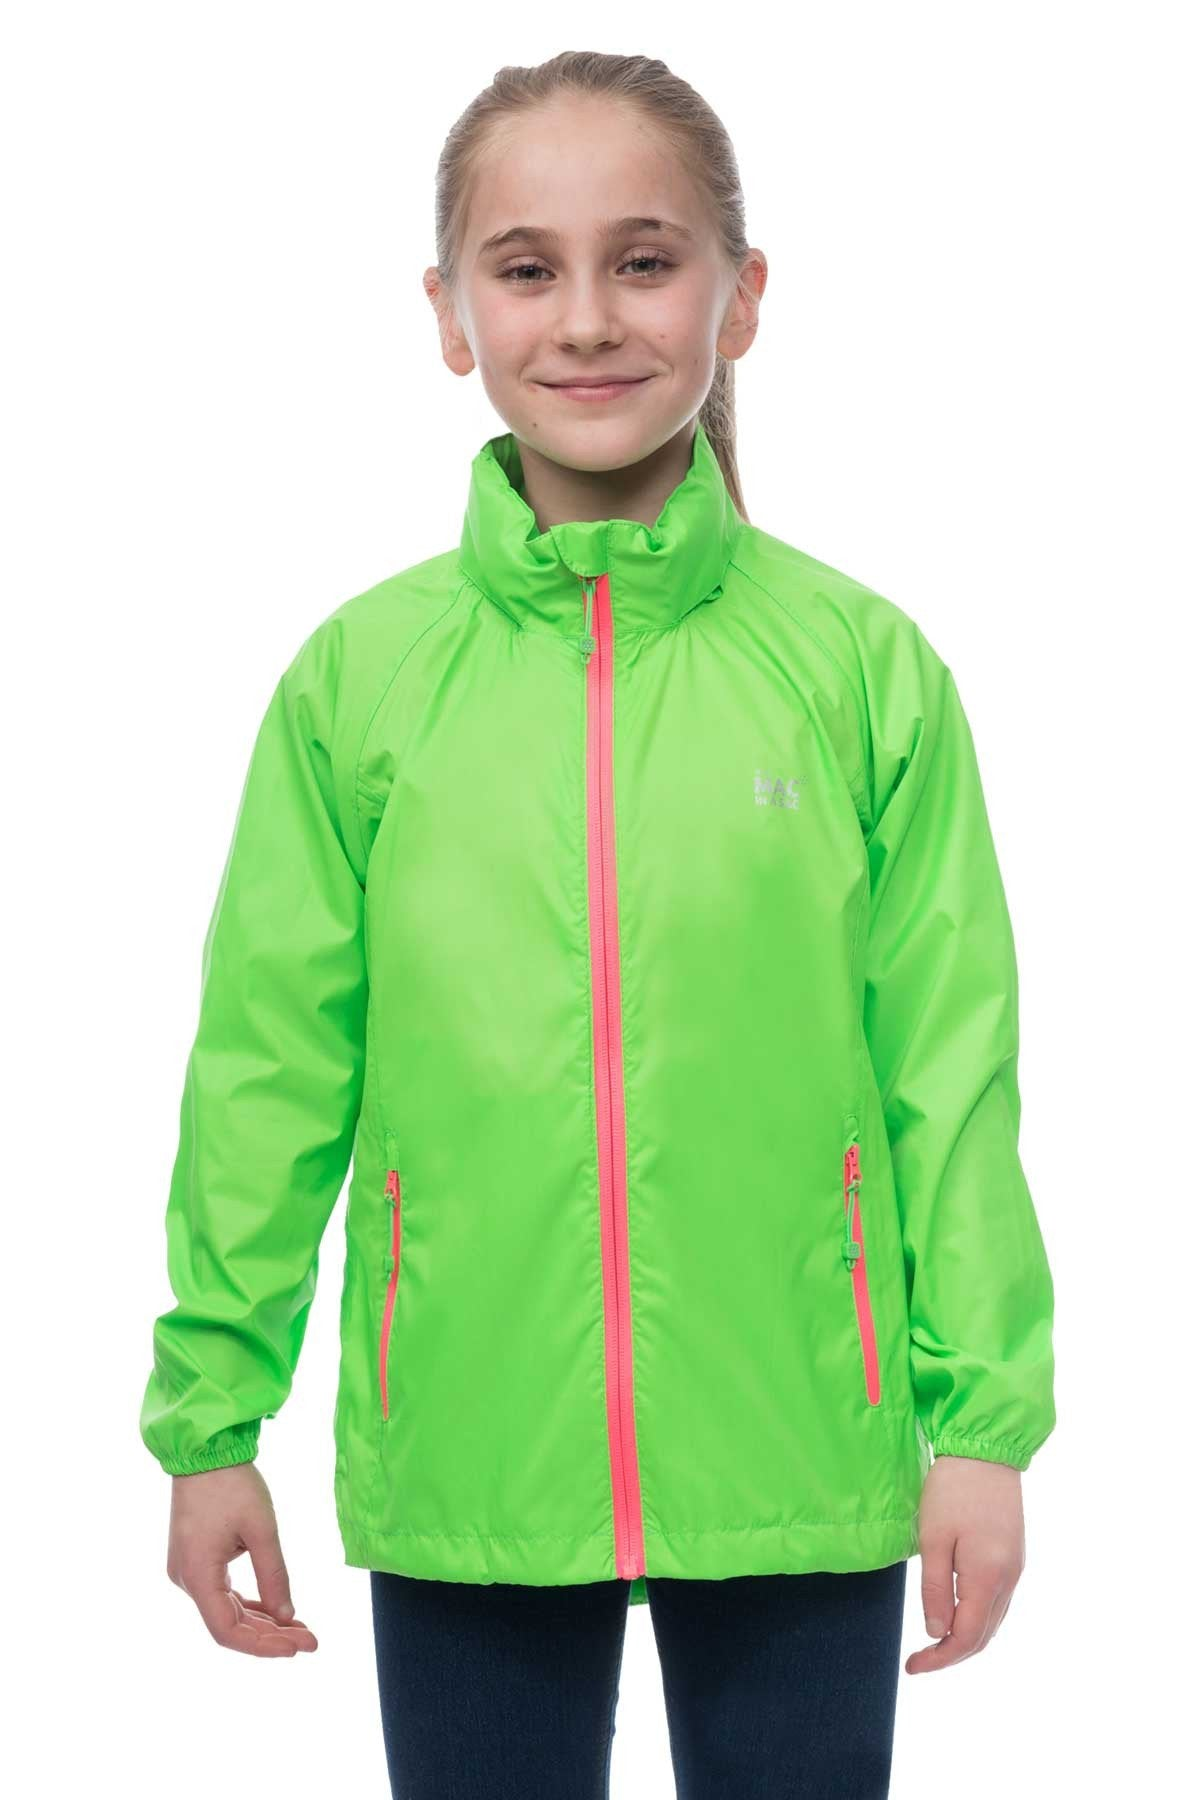 Kids Packable Waterproof Jacket - Neon Green